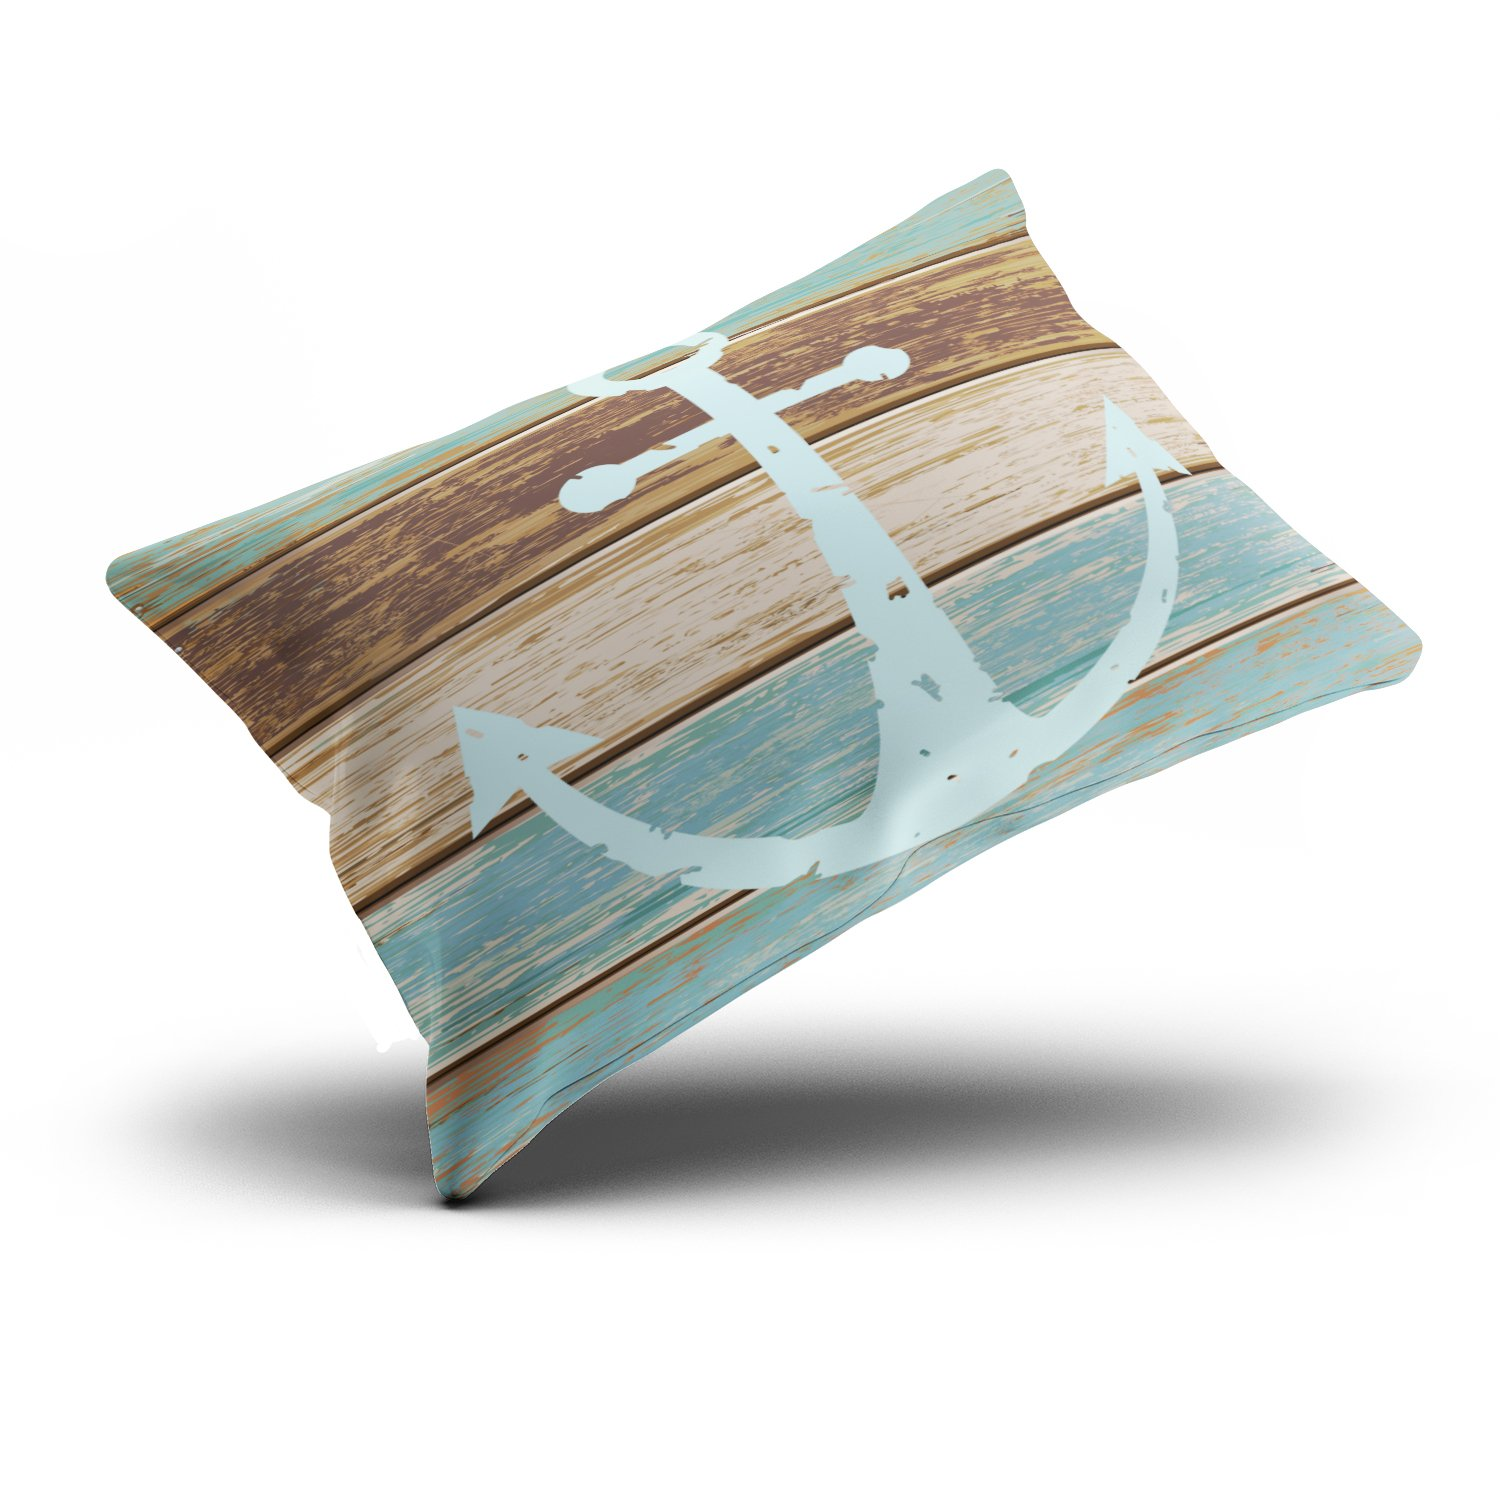 Fanaing Bedroom Custom D¨¦cor Nautical Anchor Weathered Wood Coastal Themed Pillowcase Soft Zippered Brown Aqua Mint and Turquoise Pillow Case Fashion Design One-Side Printed Standard 20x26 Inches by Fanaing (Image #3)